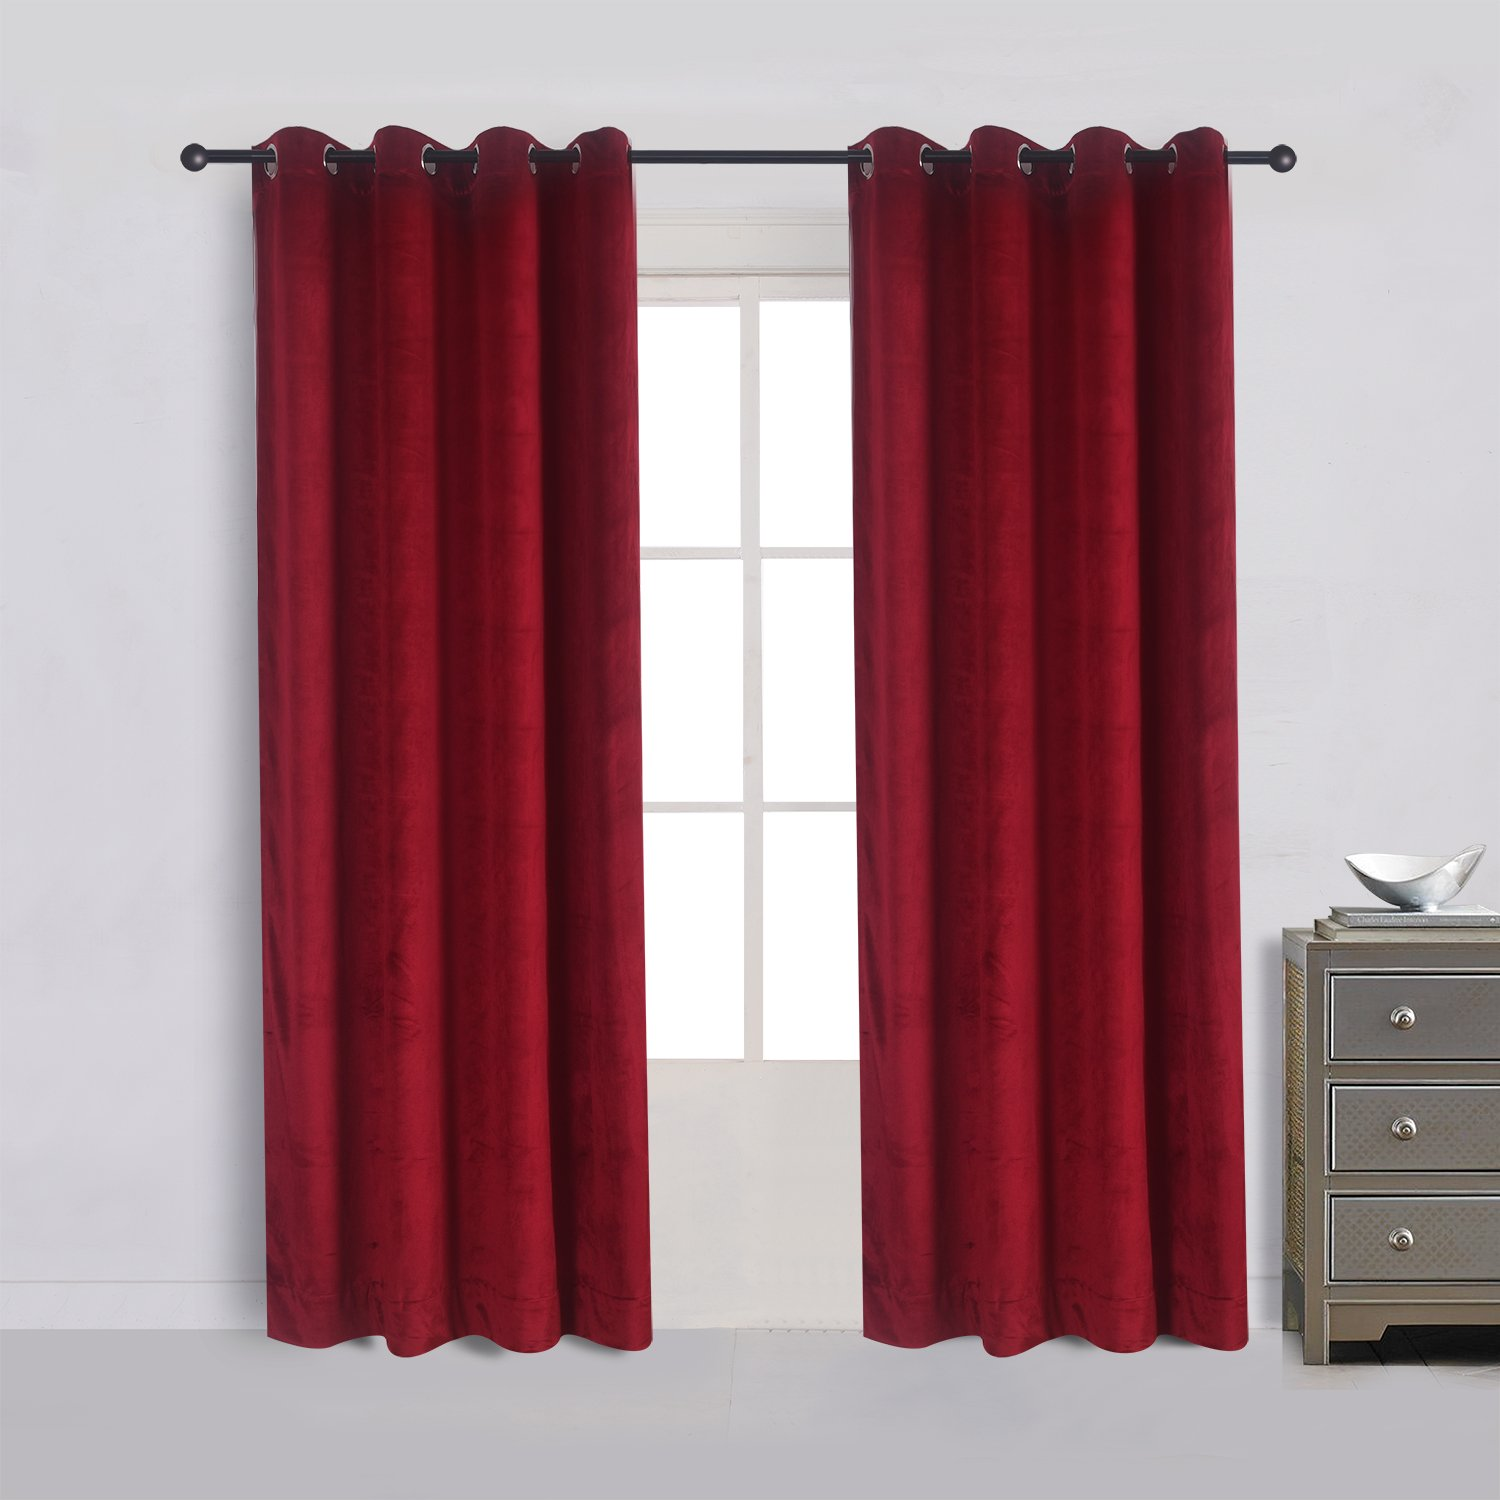 Red velvet window curtains - Amazon Com Cherry Home Set Of 2 Classic Blackout Velvet Curtains Panels Home Theater Grommet Drapes Eyelet 52wx96l Inch Red 2 Panels Theater Bedroom